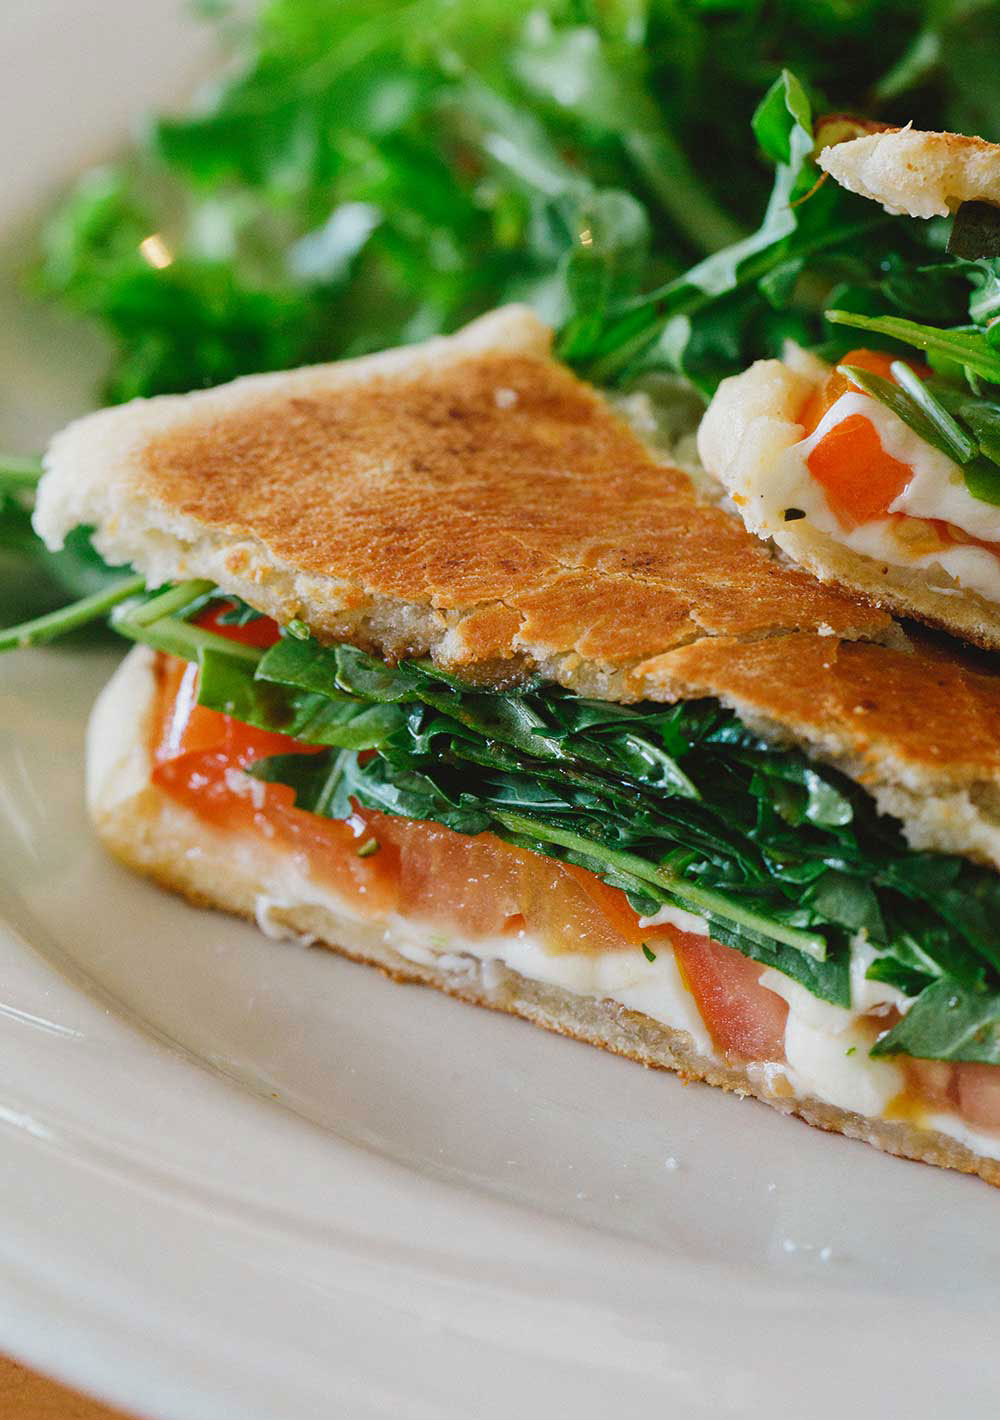 White plate with half triangle sandwich and greens